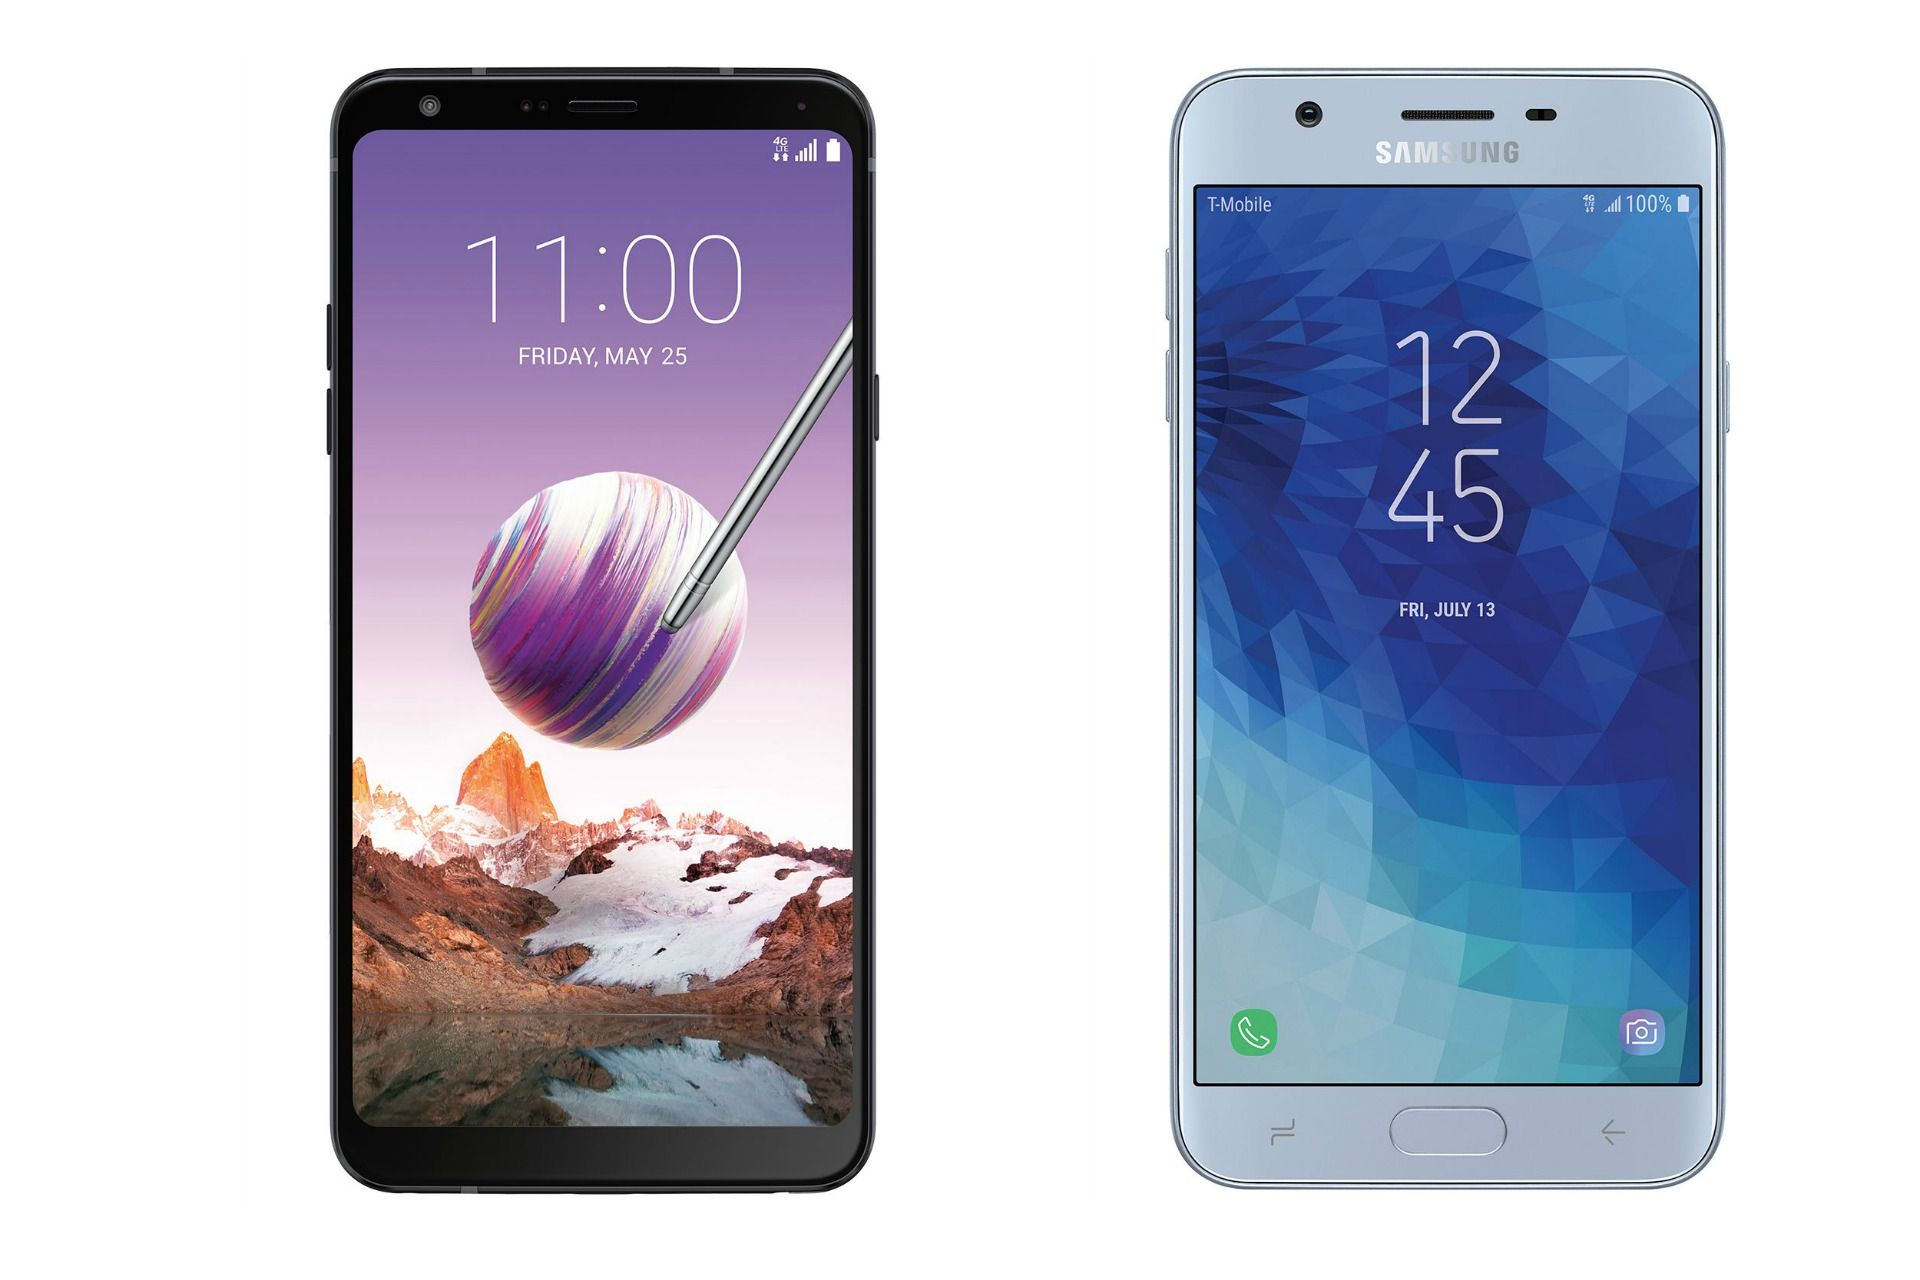 ICYMI LG Stylo 4 & Samsung Galaxy J7 Star Launch At T Mobile Android Google